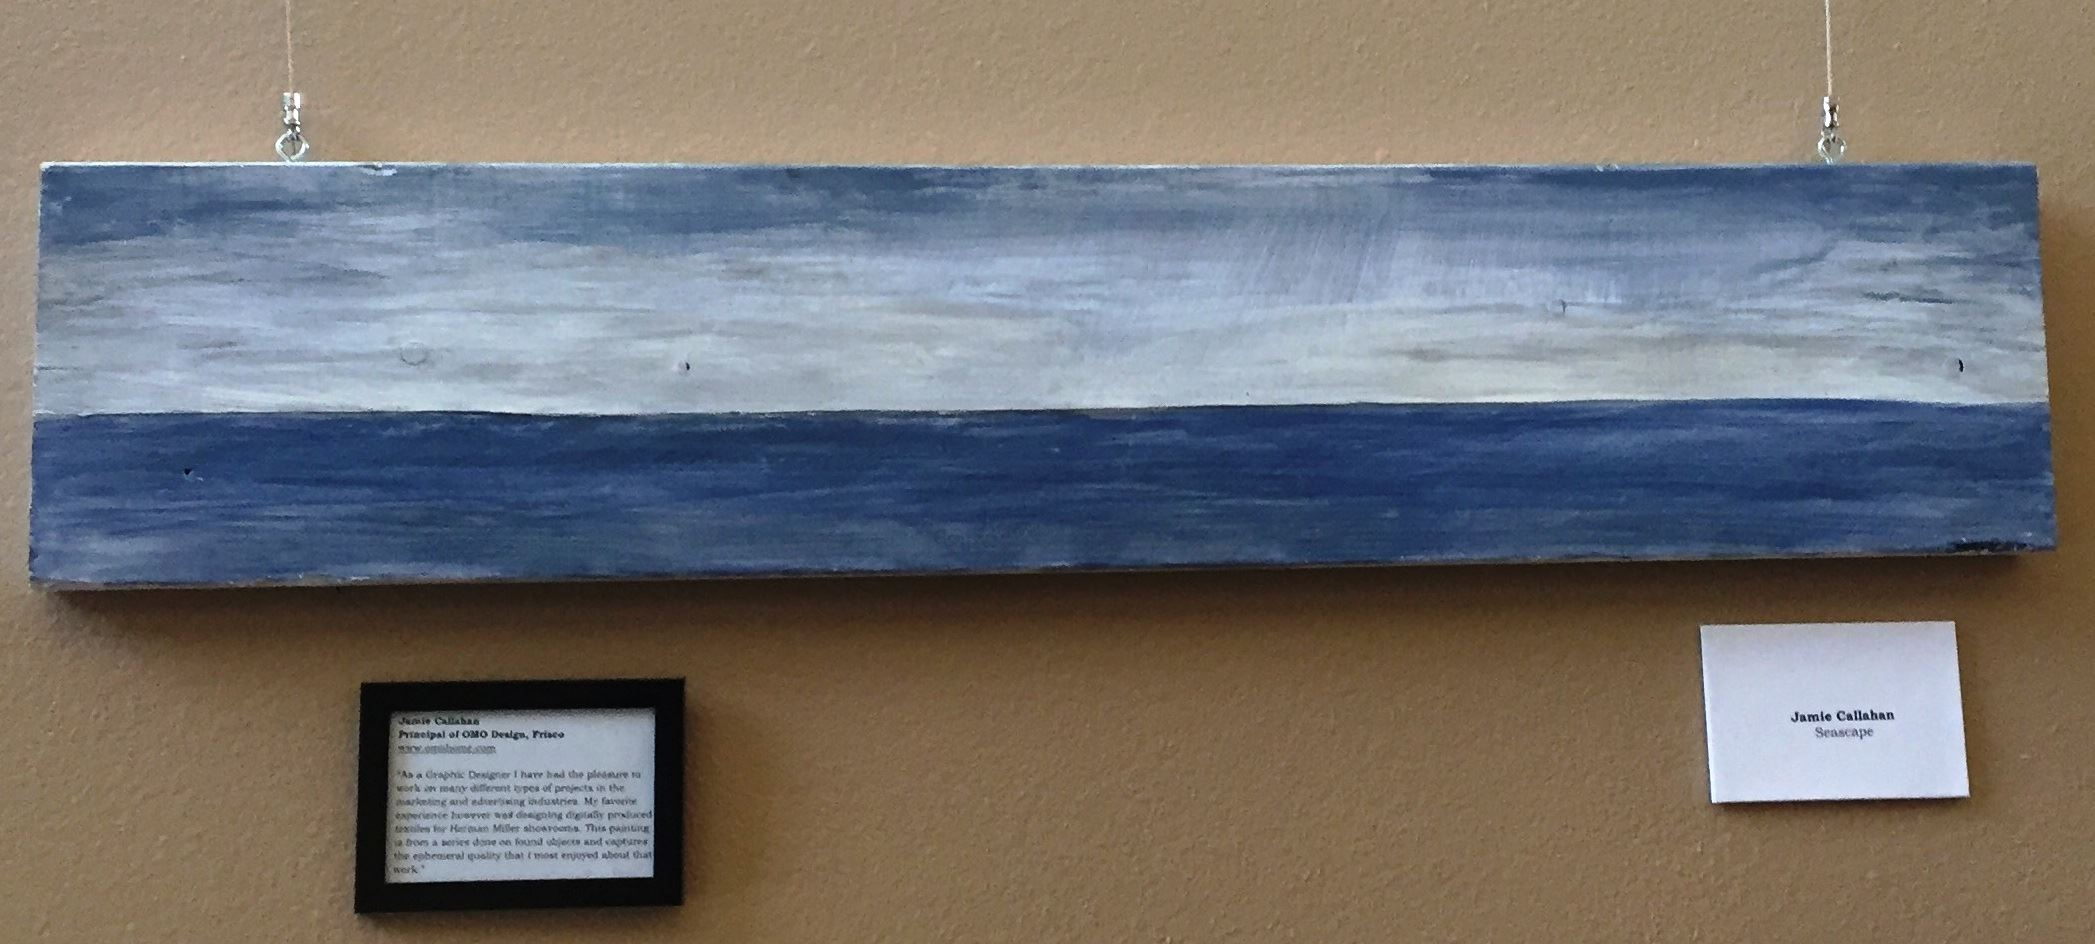 Photo of an abstract painting of the horizon on the ocean.